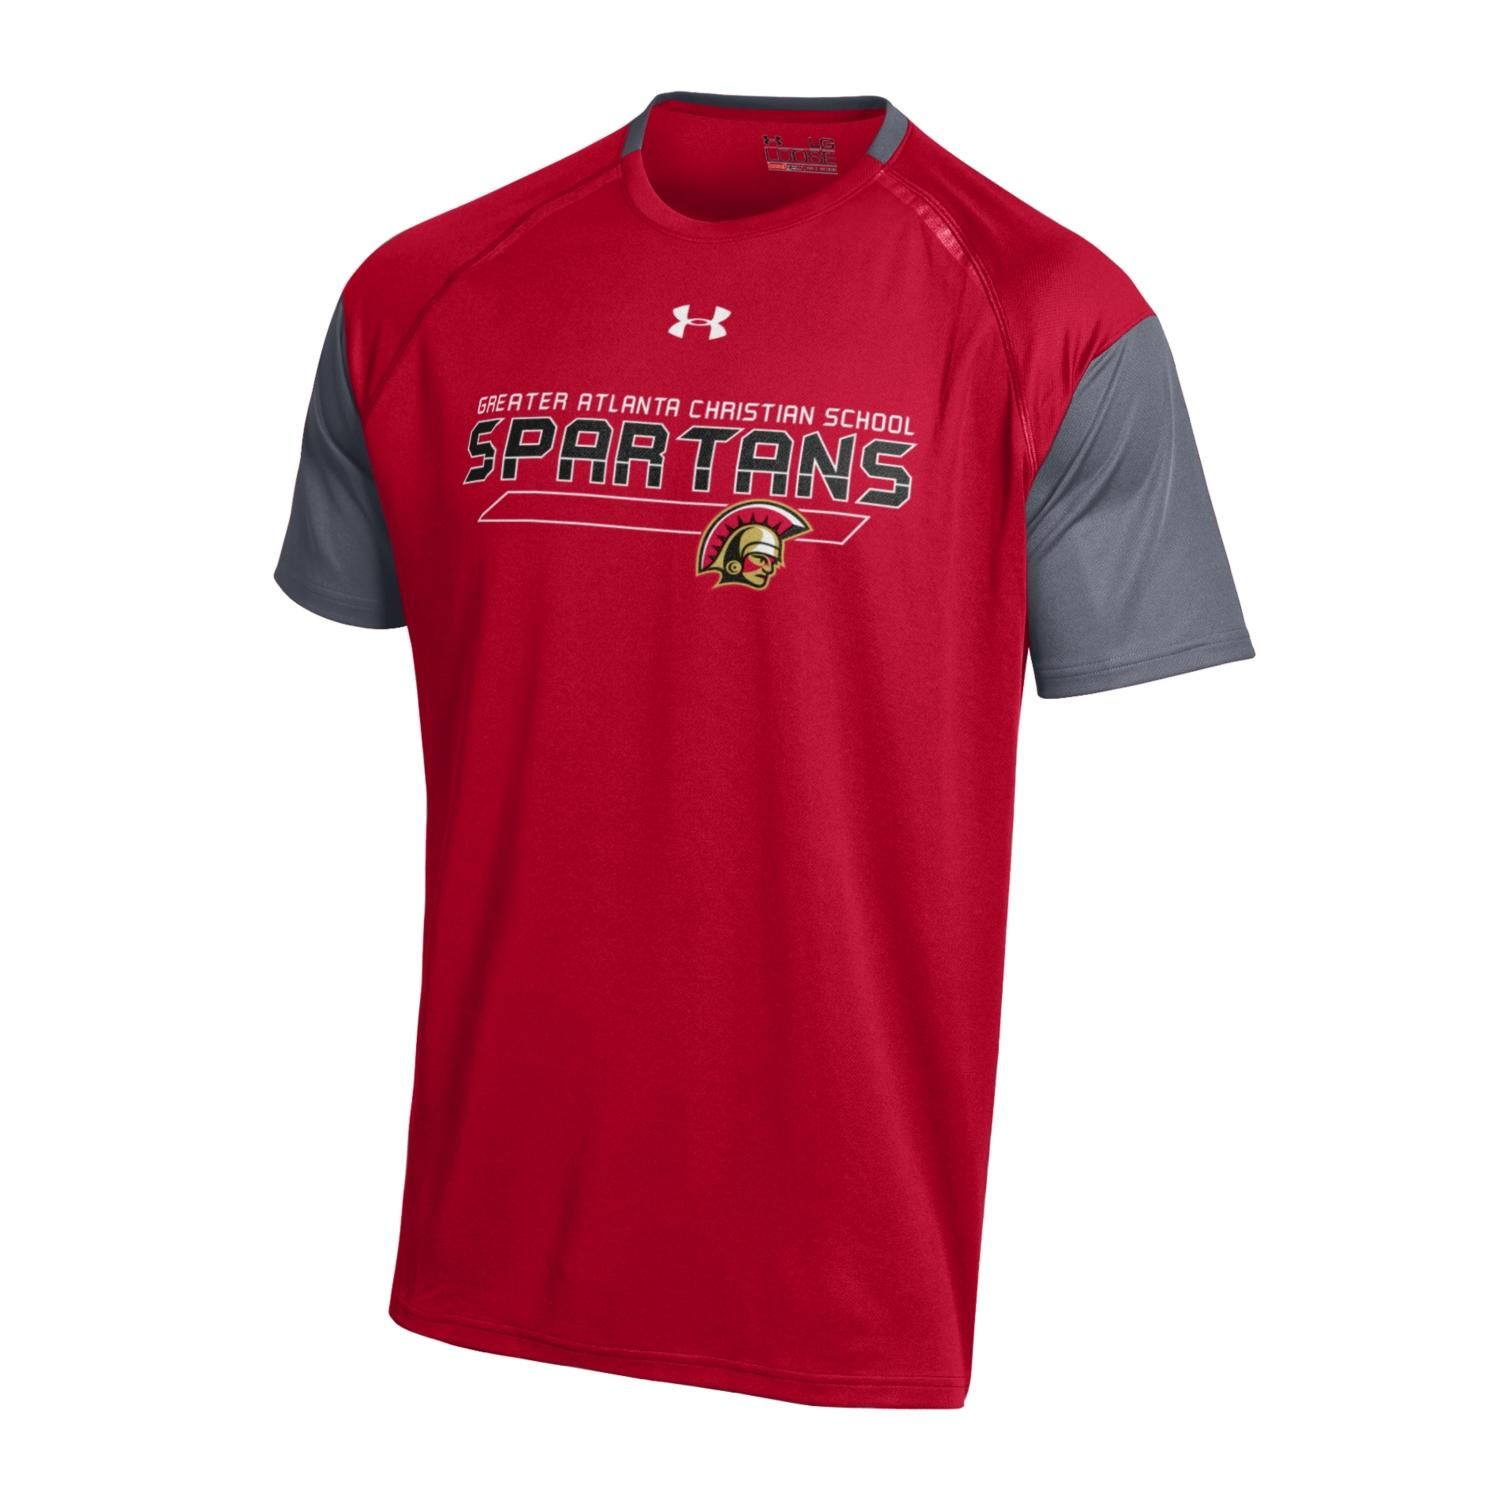 Under Armour Team Color Perpetual Short Sleeve Tshirt In Red And Charcoal Limited Edition Youth Sizes Xs Xl Mens Tops Spirit Wear Short Sleeve Tshirt